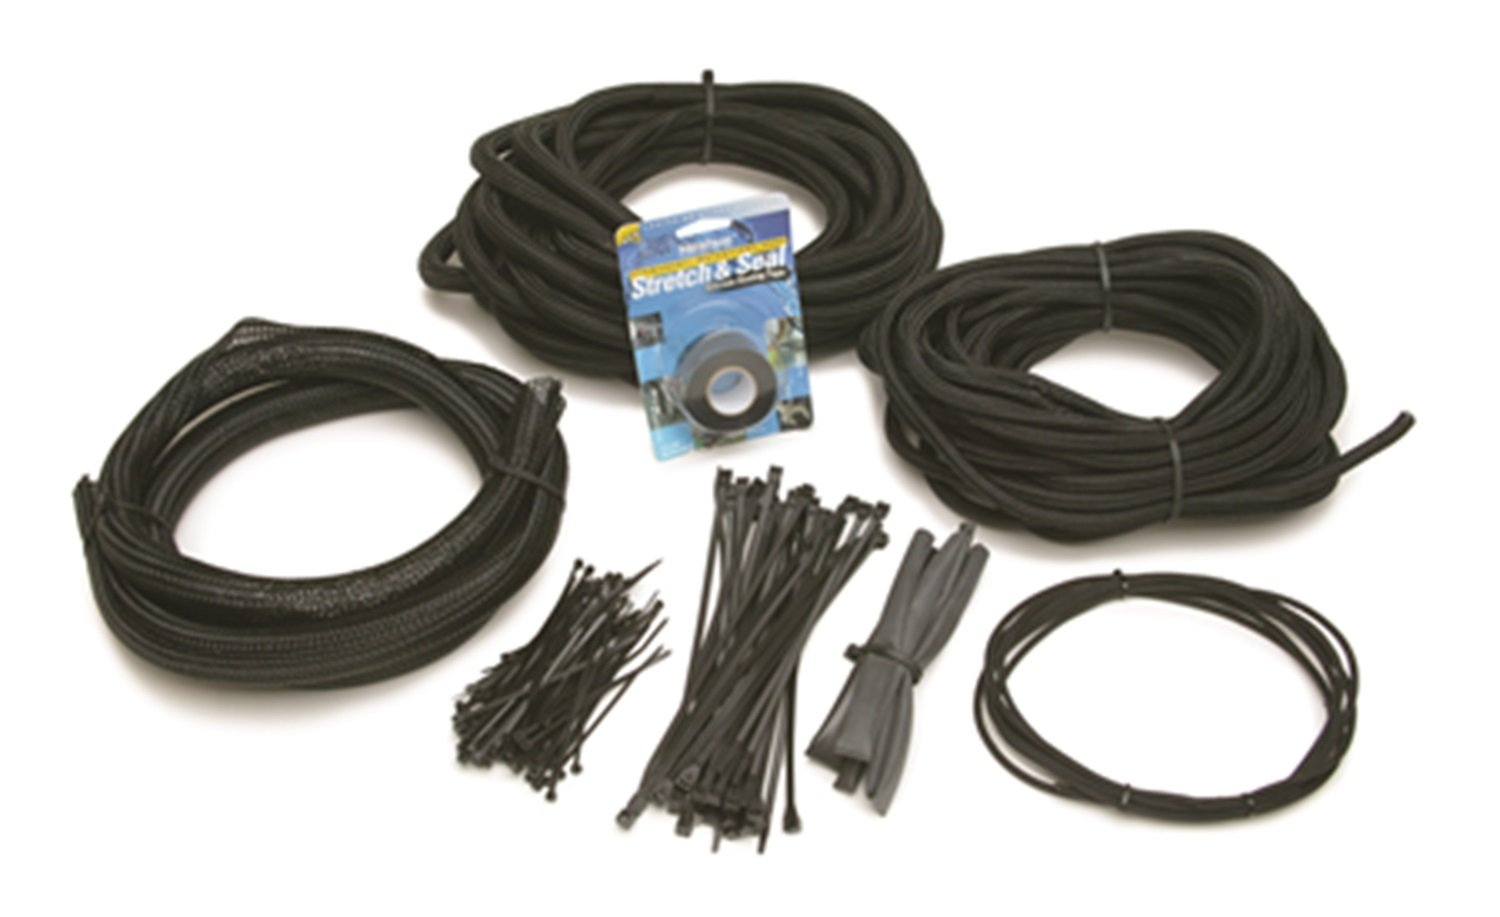 61KfhP ZlhL._SL1500_ amazon com painless wiring 70920 power braid chassis kit automotive painless wiring harness rebate at gsmx.co